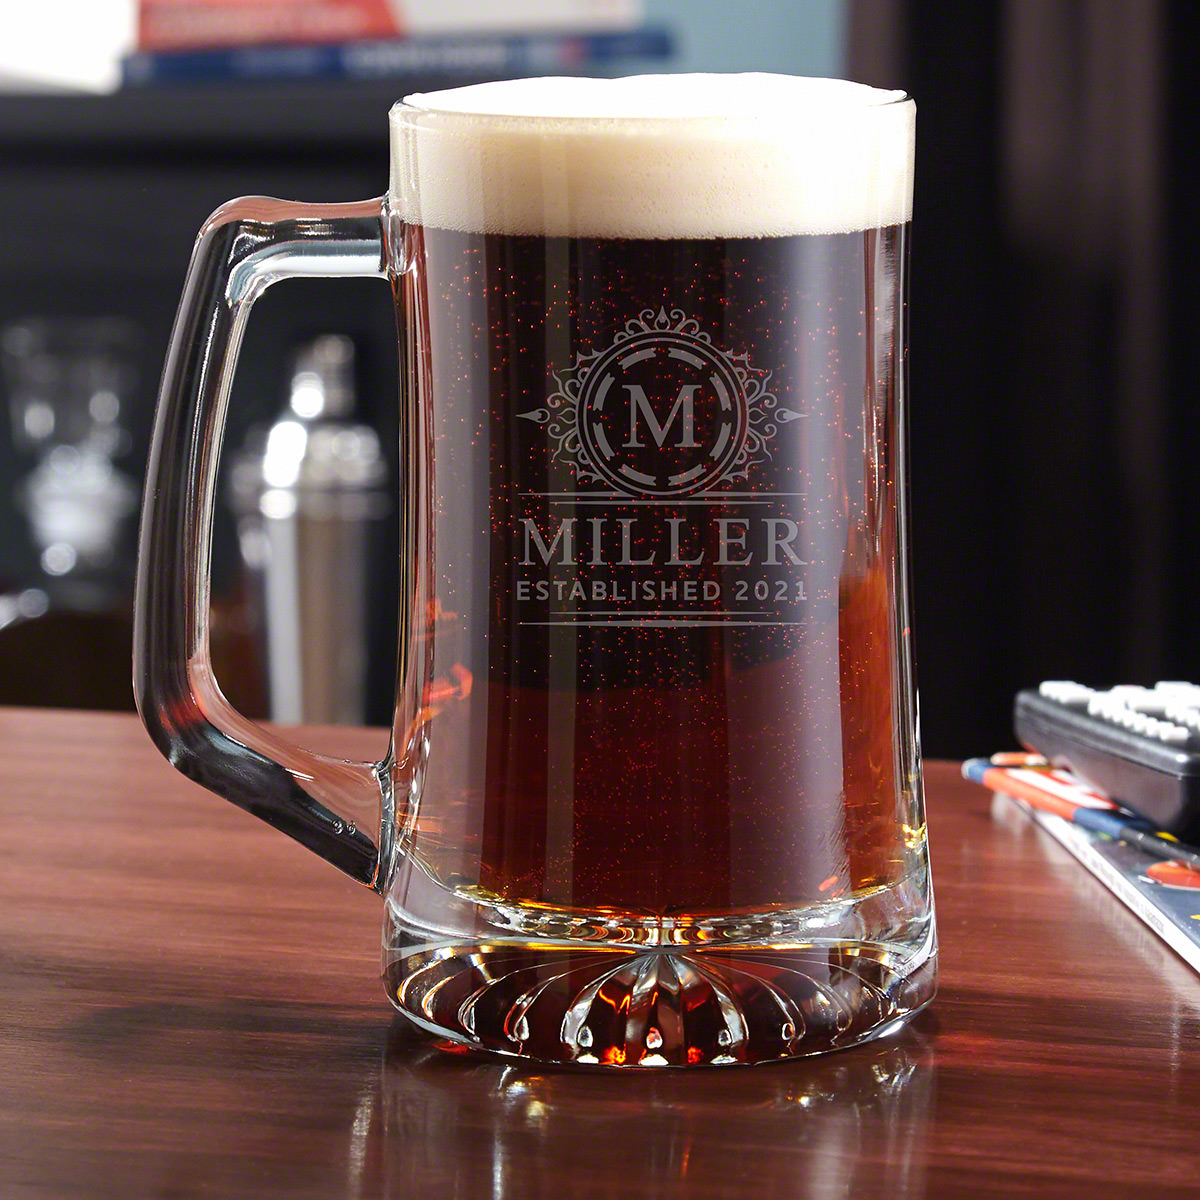 Don't ever settle for drinking out of a bottle or a can ever again when you can enjoy your beer from a personalized beer mug! This hefty mug has extra thick glass to insulate your drink so that you can enjoy every last drop at the perfect, chilled tempe #mug